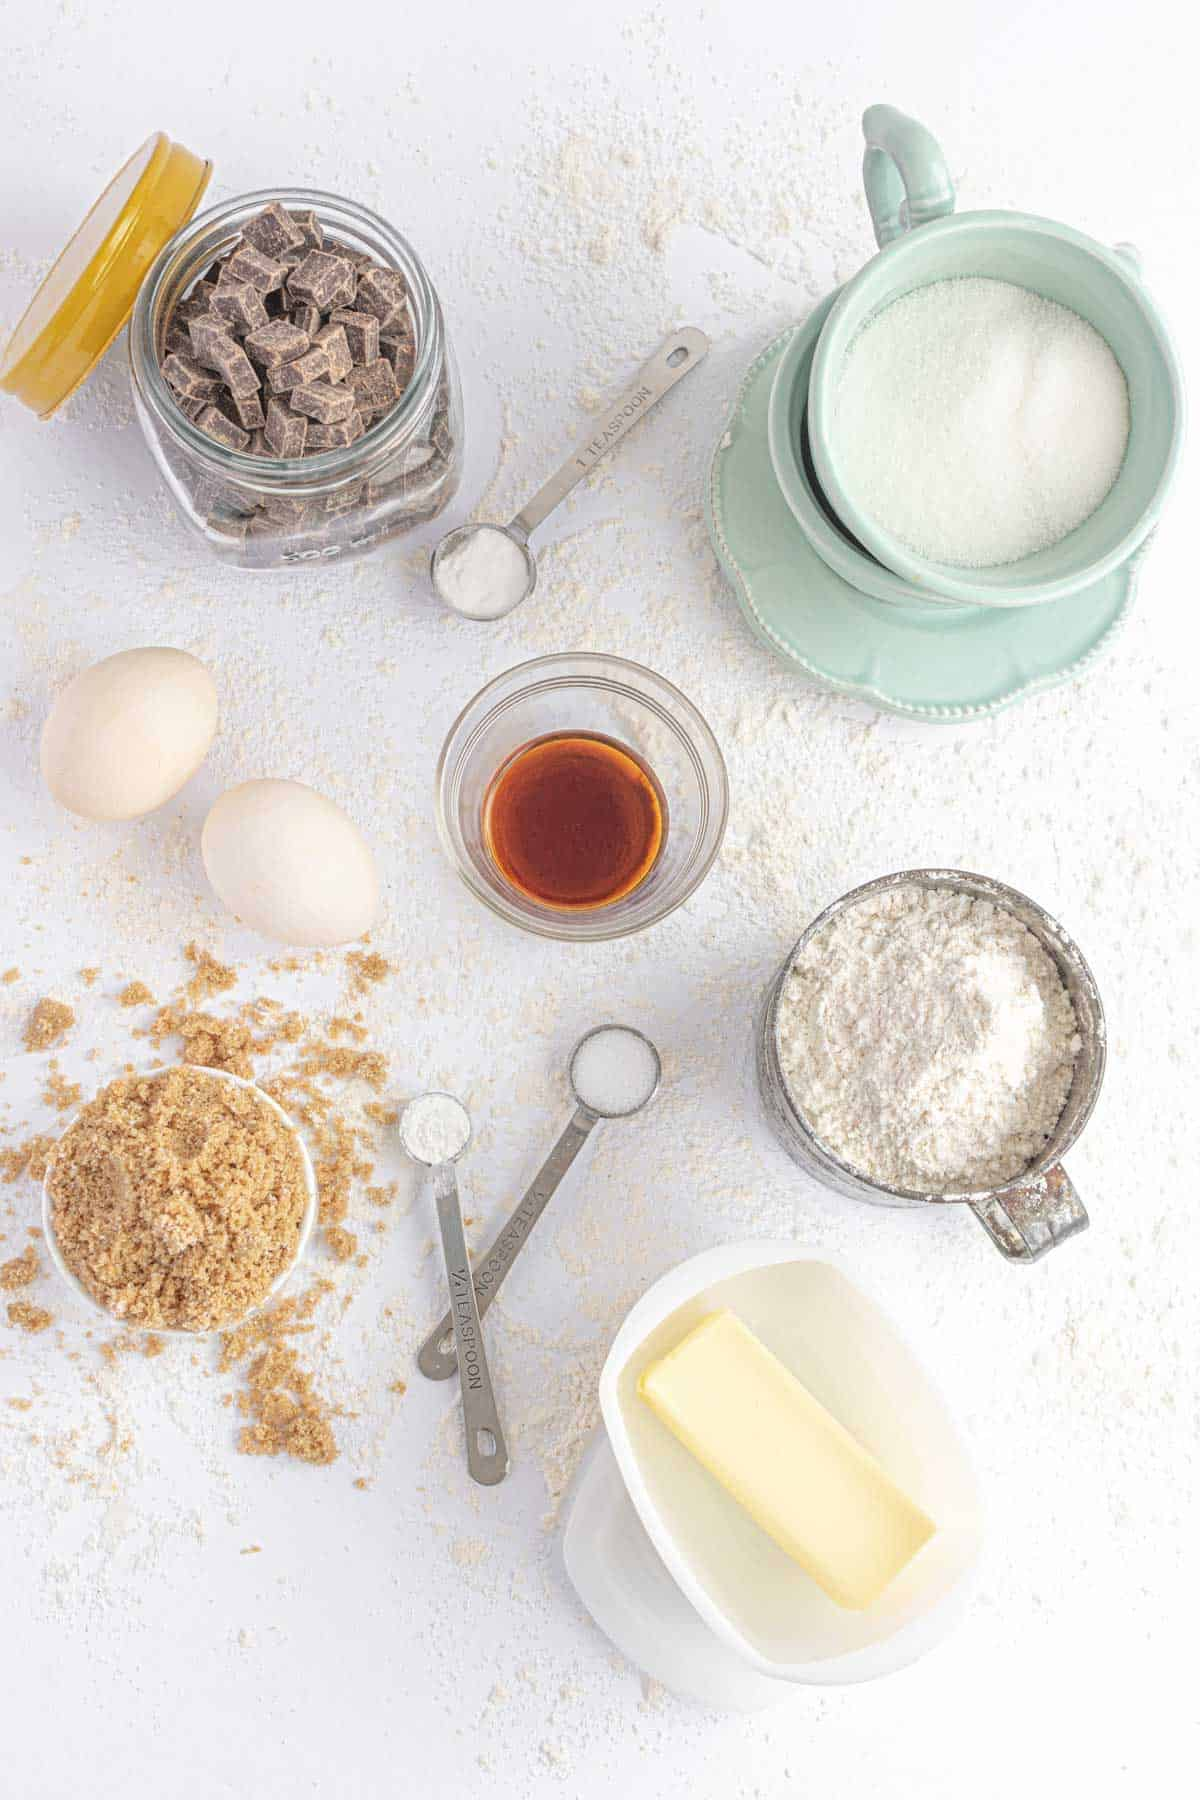 A Stick of Butter, White Sugar, Vanilla Extract and the Rest of the Ingredients on a Countertop Dusted with Flour